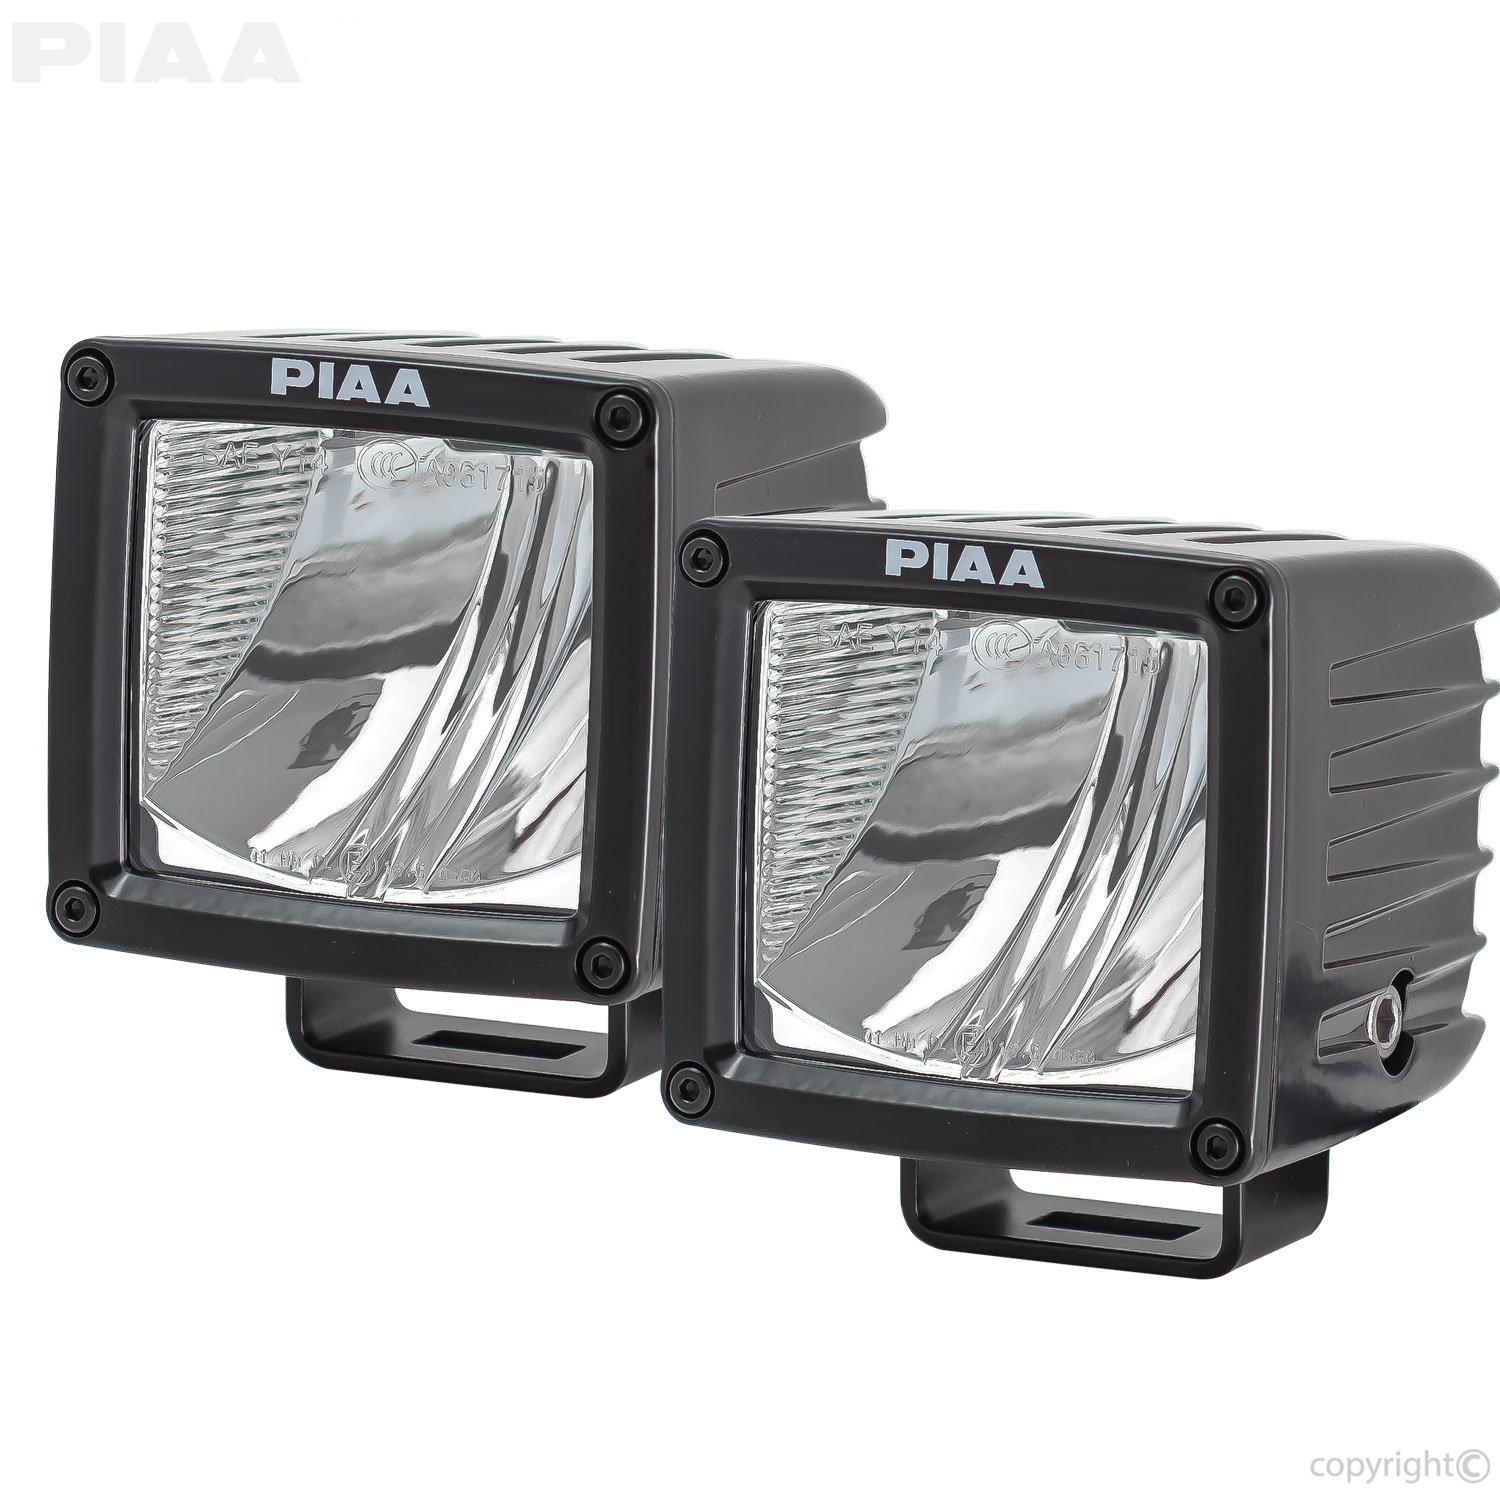 piaa 77603 rf3 led dual hr?bw=1000&w=1000&bh=1000&h=1000 piaa motorcycle led lights  at n-0.co